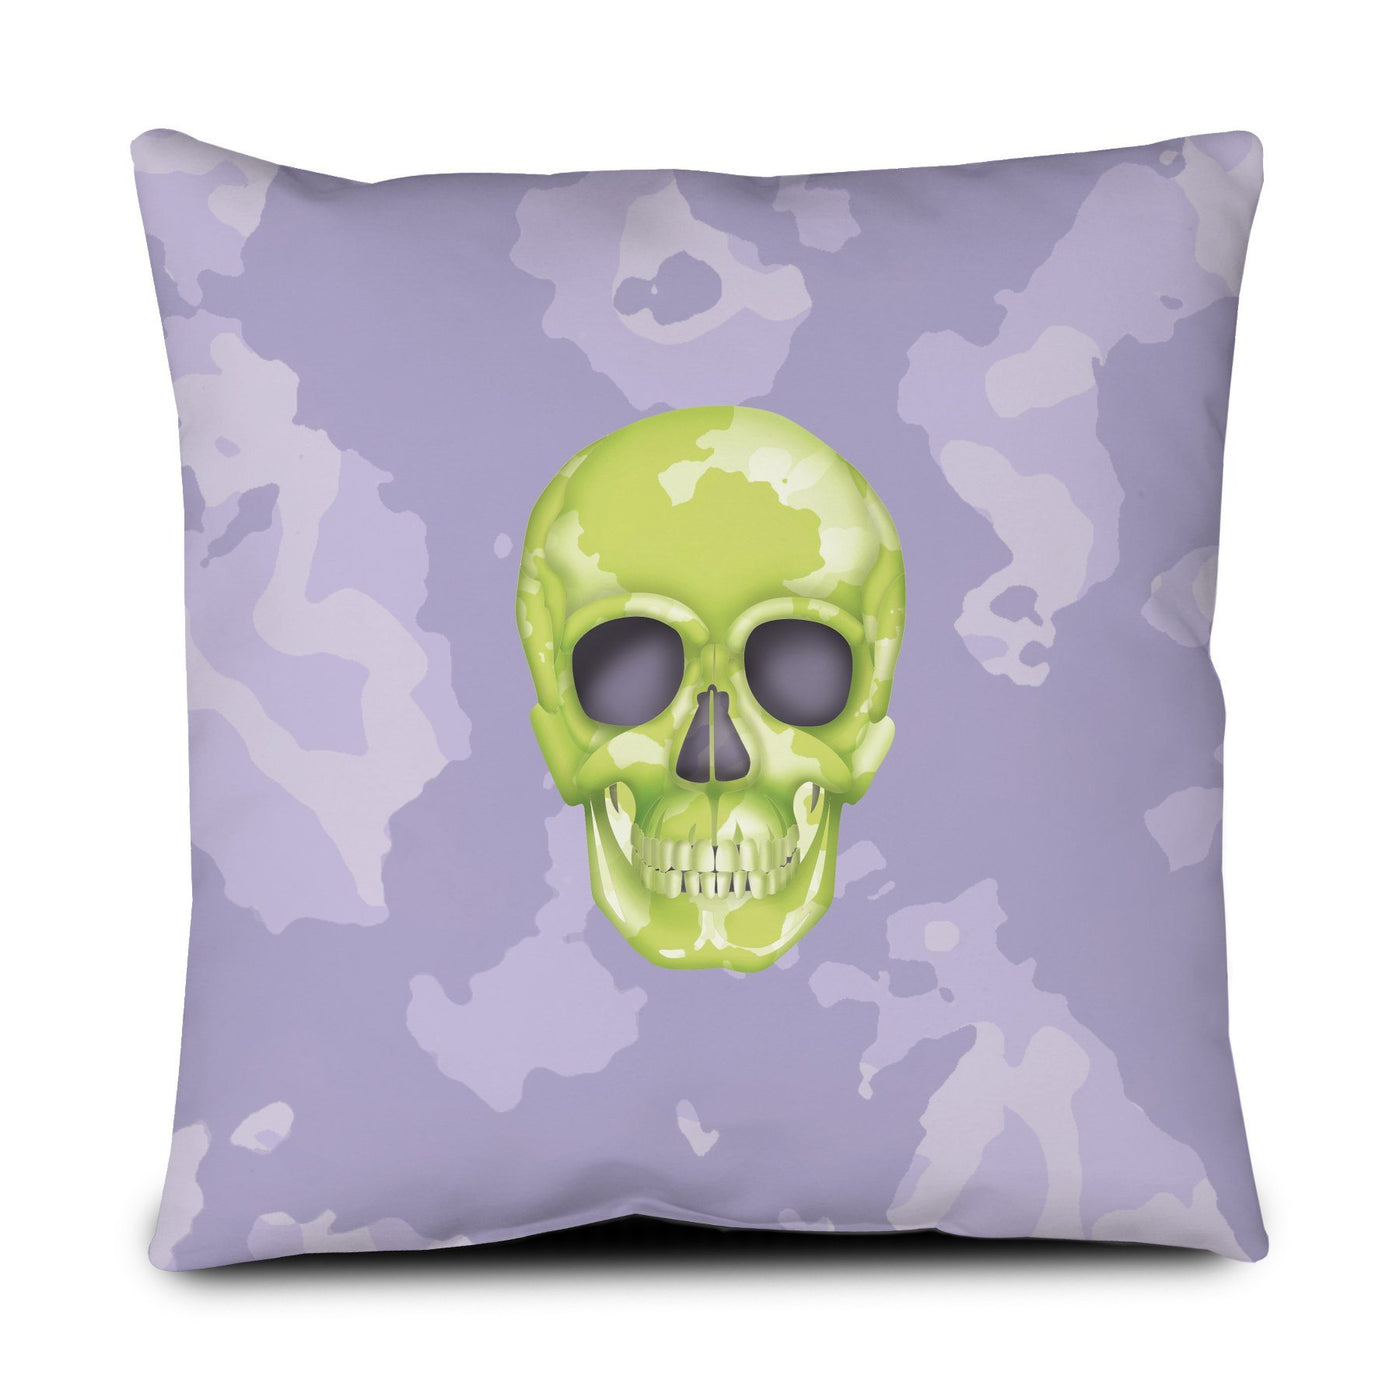 Floor Pillow - Skull Camo Lime Green/Lavender throw LeighDeux, LLC